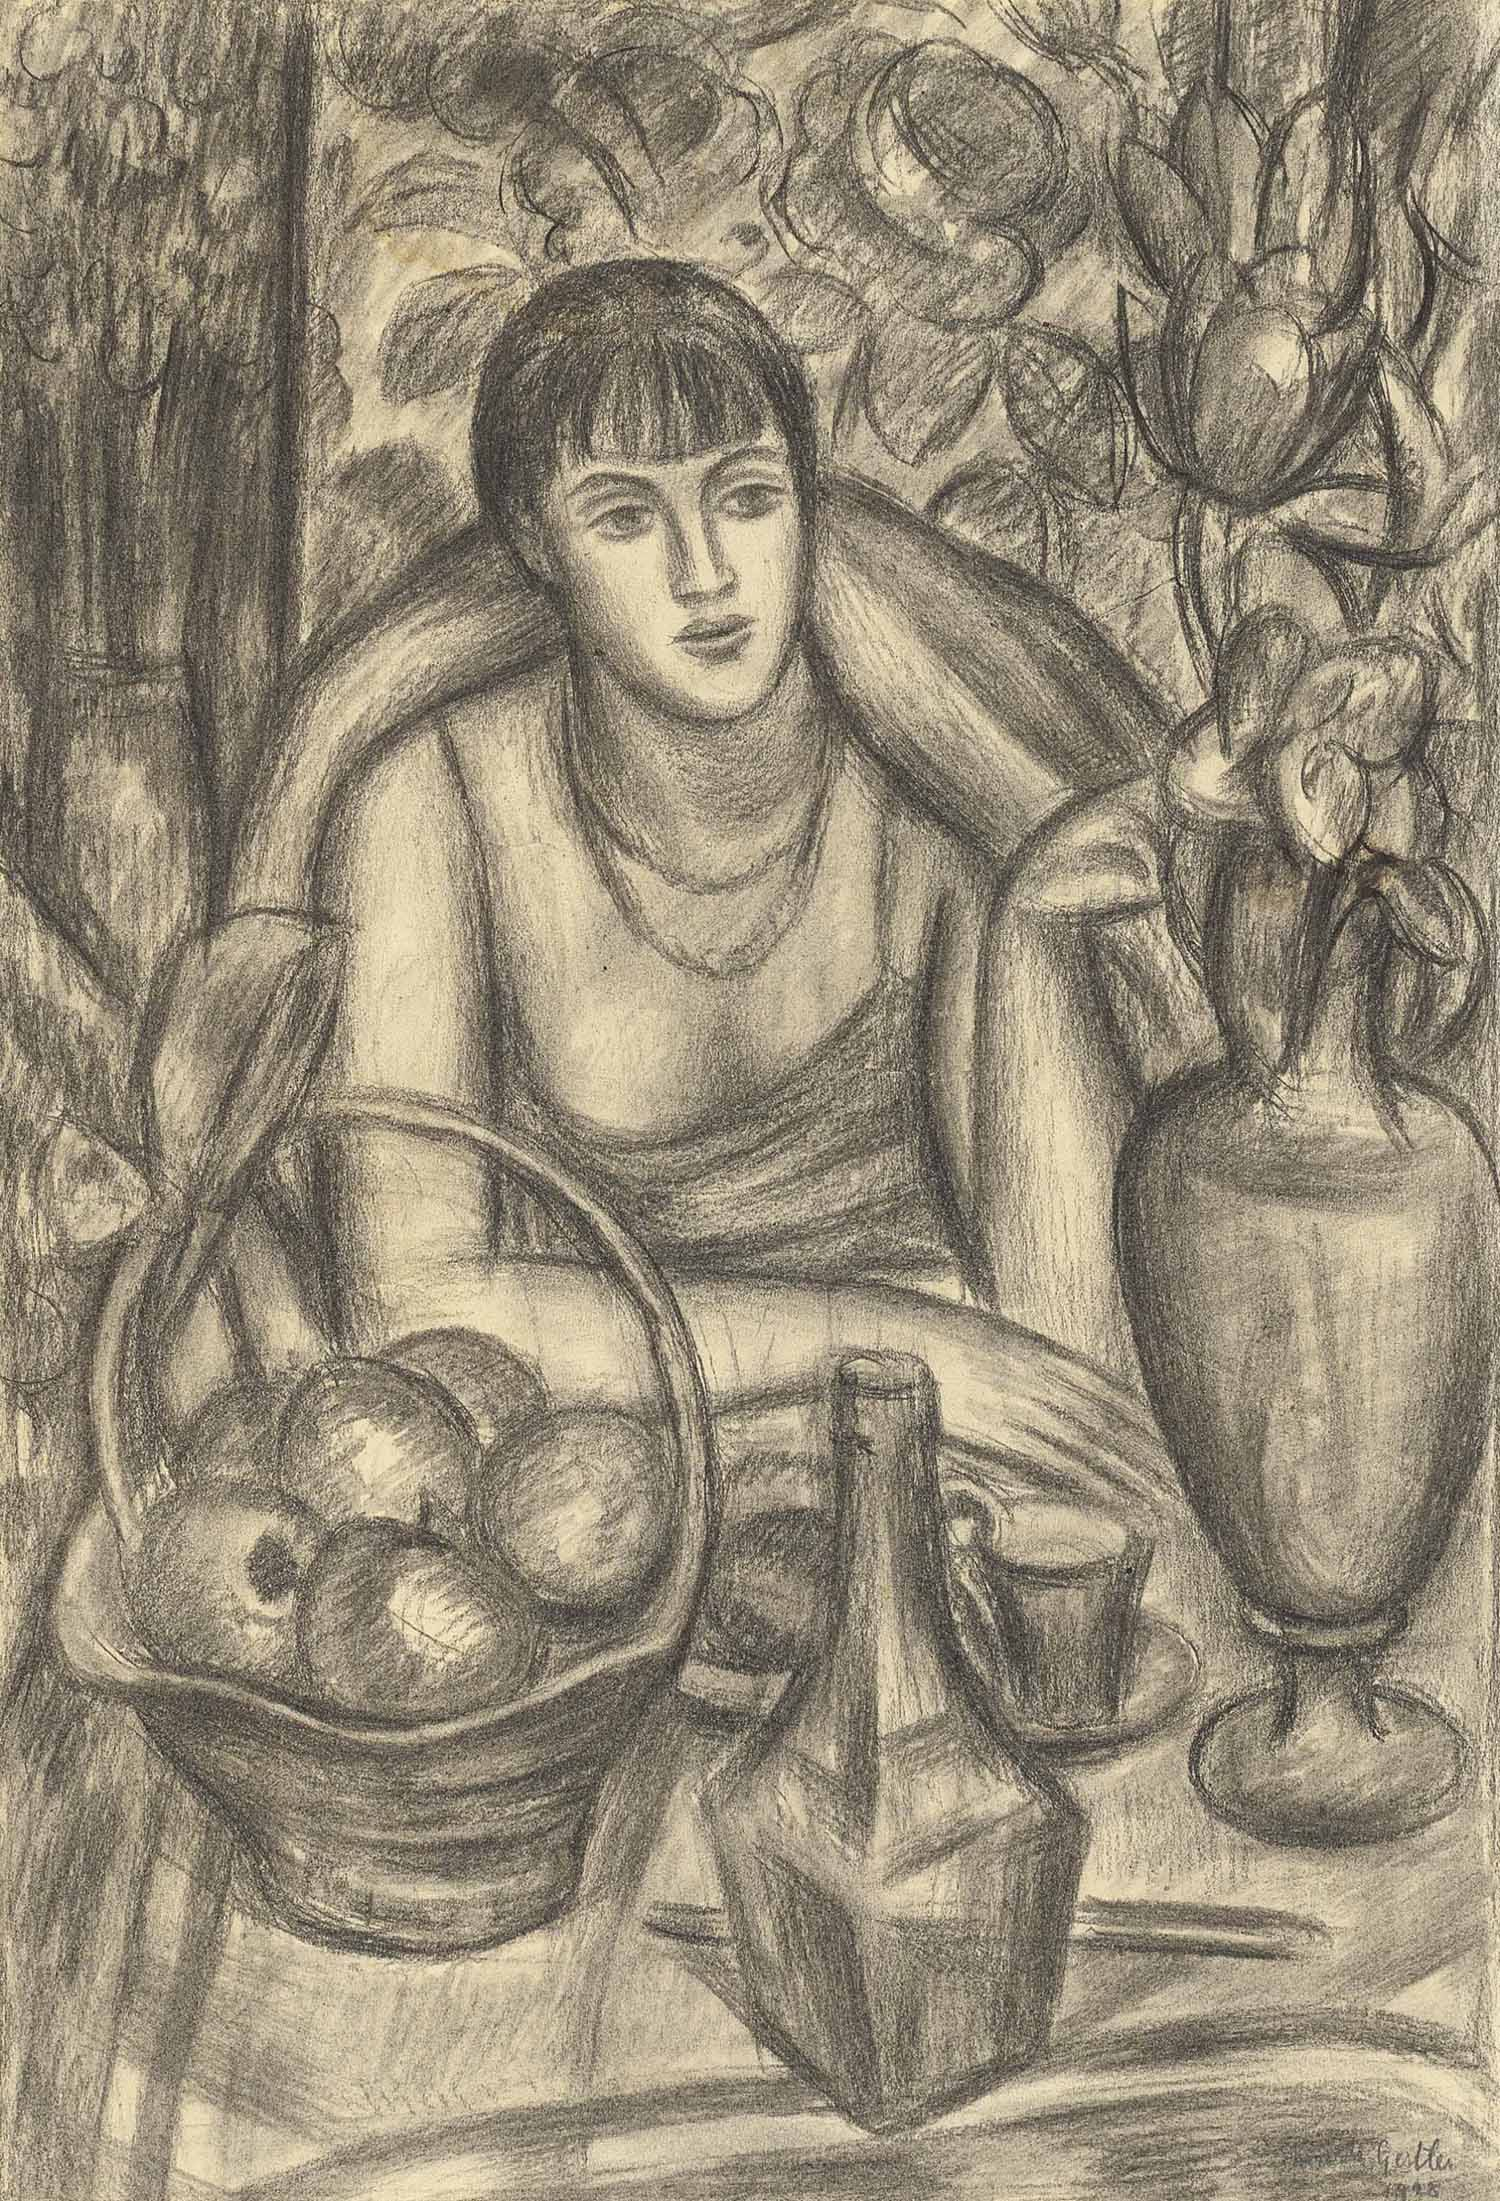 Supper, Study for Portrait of Natalie Denny